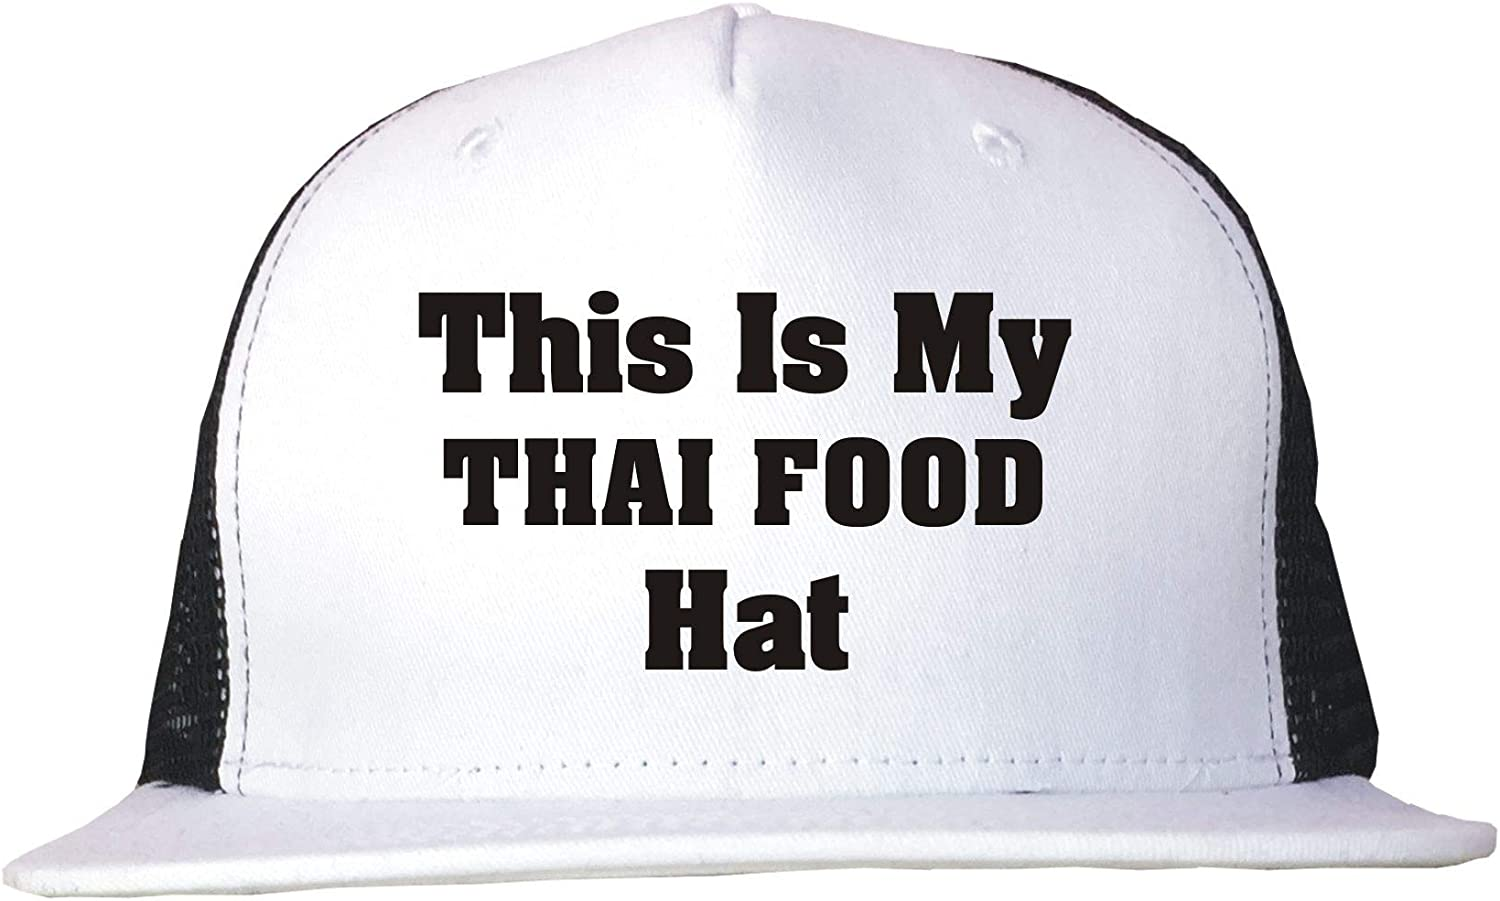 99 Volts This is My Thai Food Hat Adult Trucker Cap Adjustable Black/White